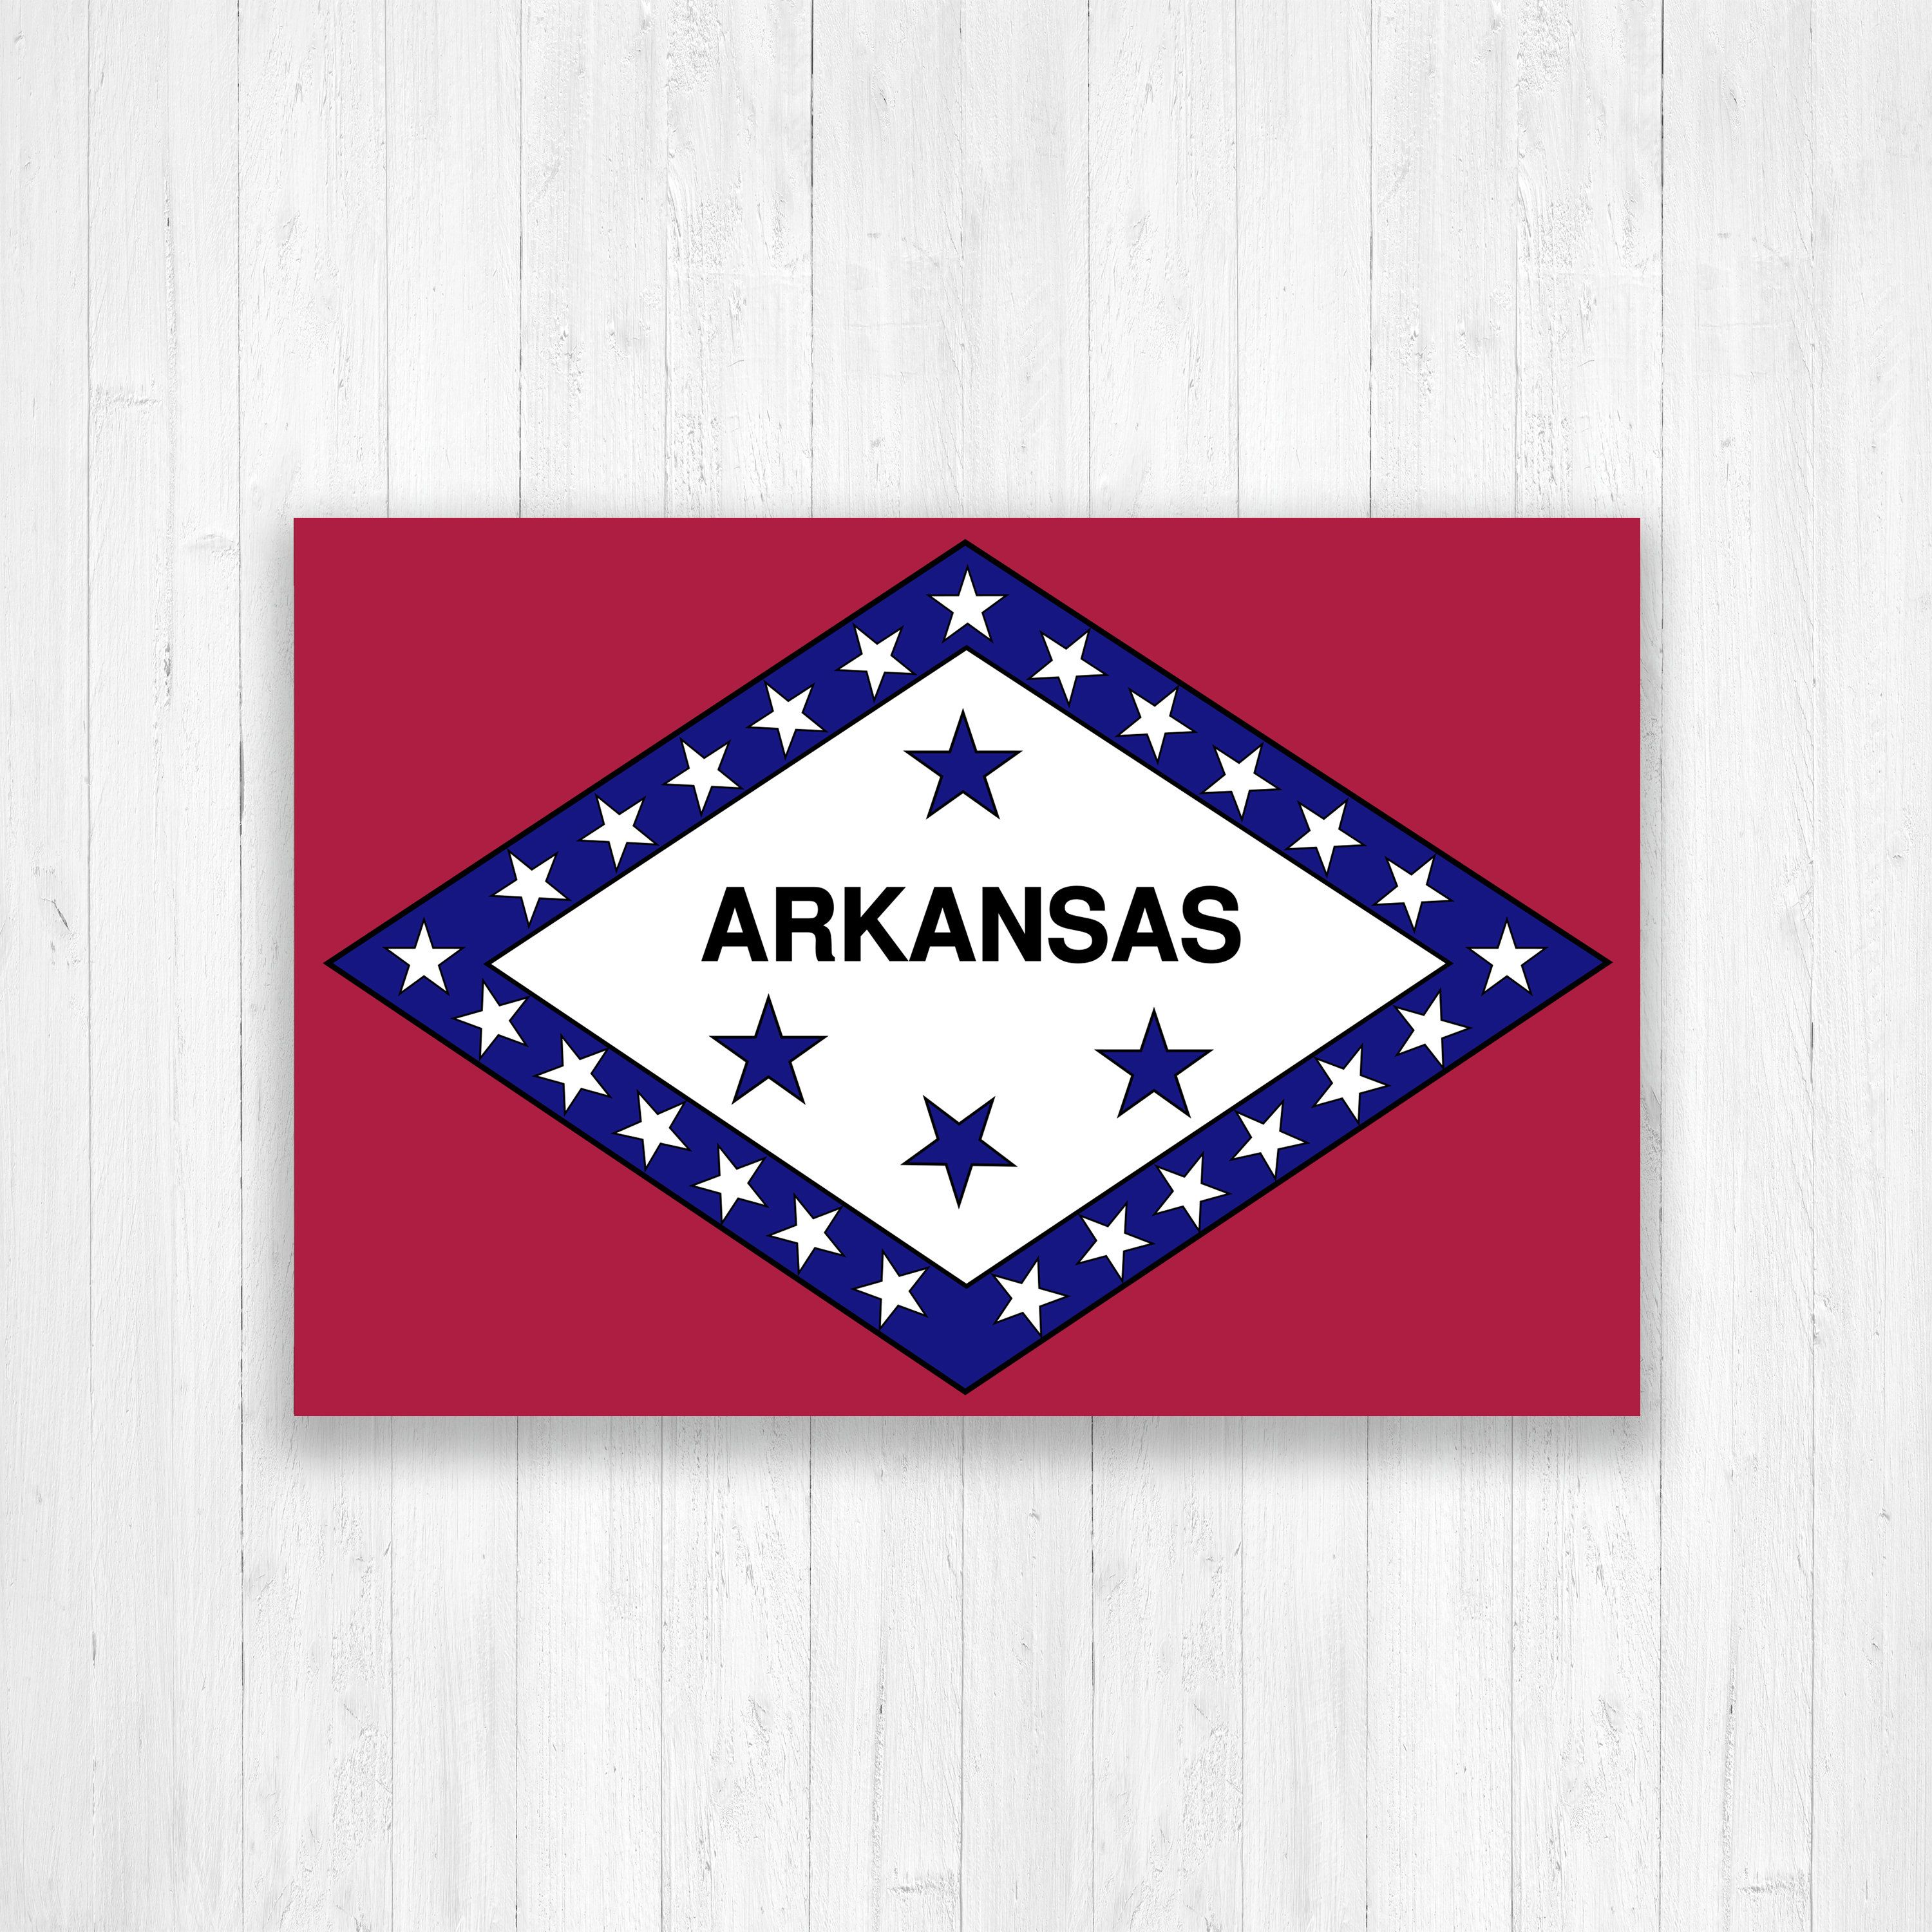 Arkansas State Flag Image